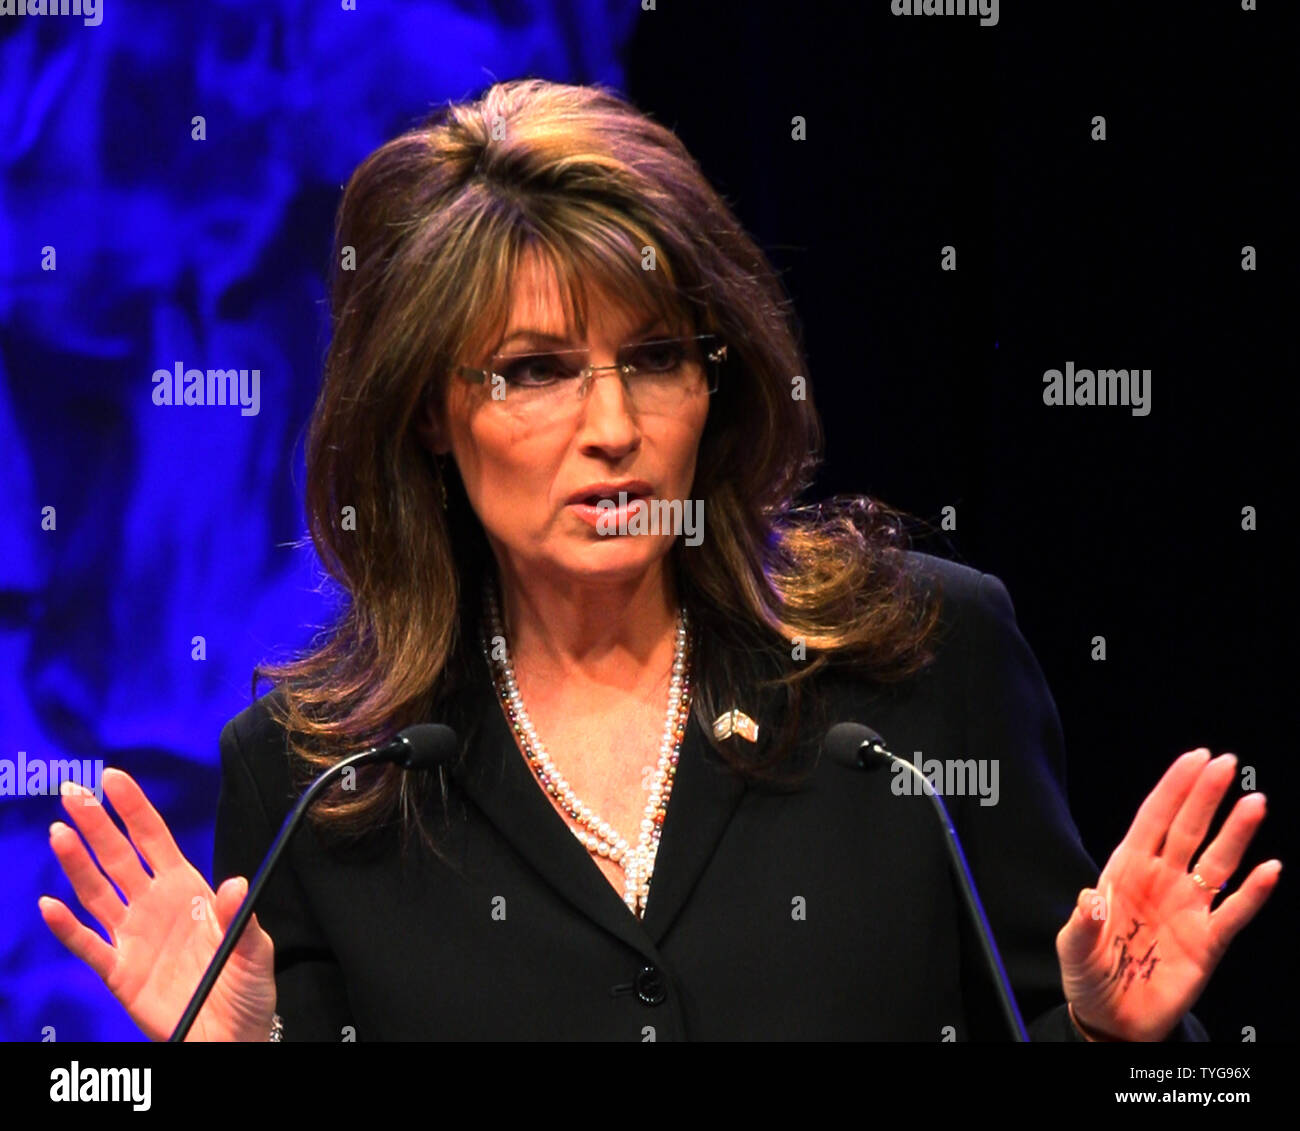 Former Alaska Governor Sarah Palin speaks at the National Tea Party Convention at the Opryland Hotel in Nashville, Tennessee on February 6, 2010. The words 'energy', 'budget cuts', 'tax' and 'lift American spirits' are seen written in ink on her left hand. UPI/Terry Wyatt. - Stock Image